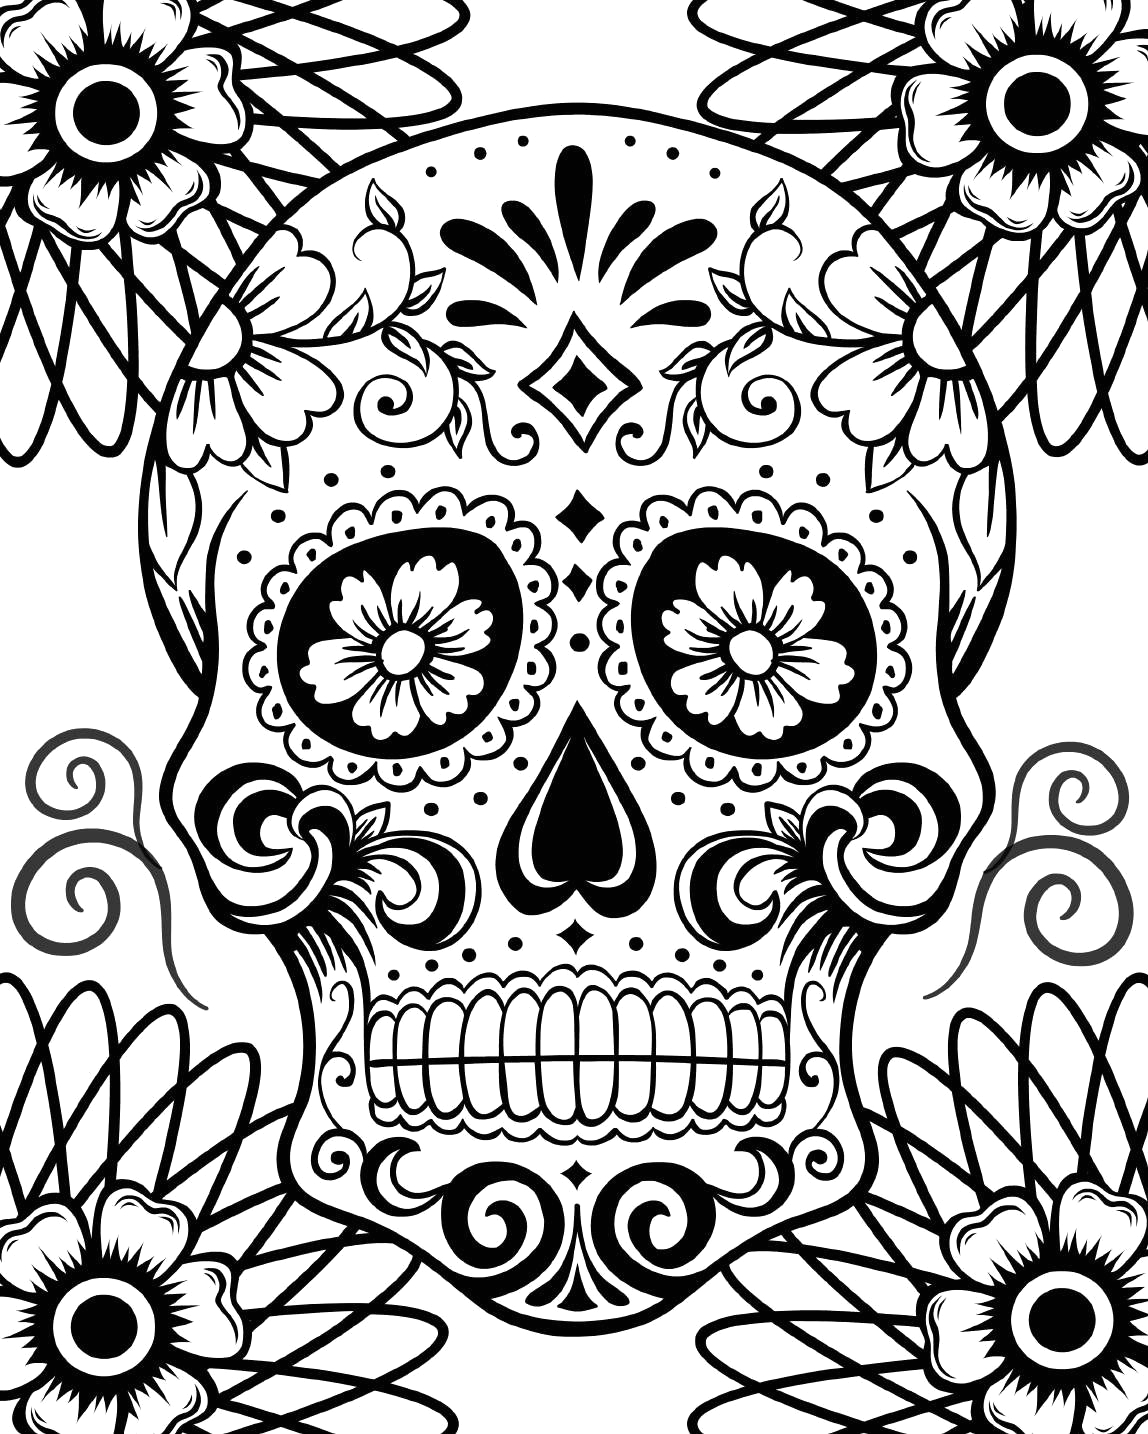 Day Of the Dead Skull Coloring Pages Printable Free Printable Day Of the Dead Coloring Pages Best